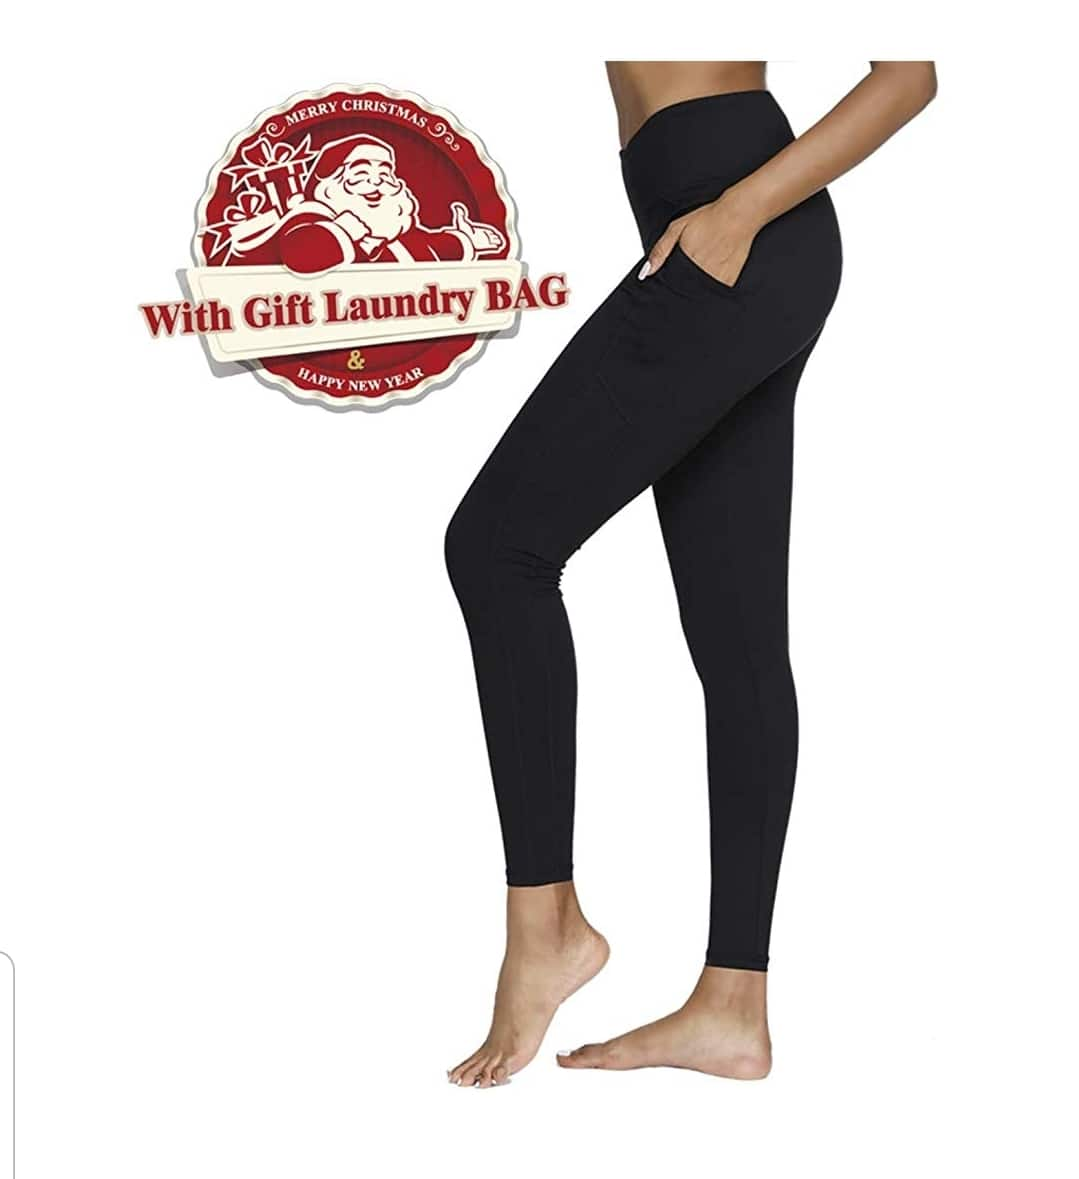 62dd14fad2319 Yoga Pants, Womens Leggings Workout Running Pants With Pockets @Amazon  starting @6.99 $6.99